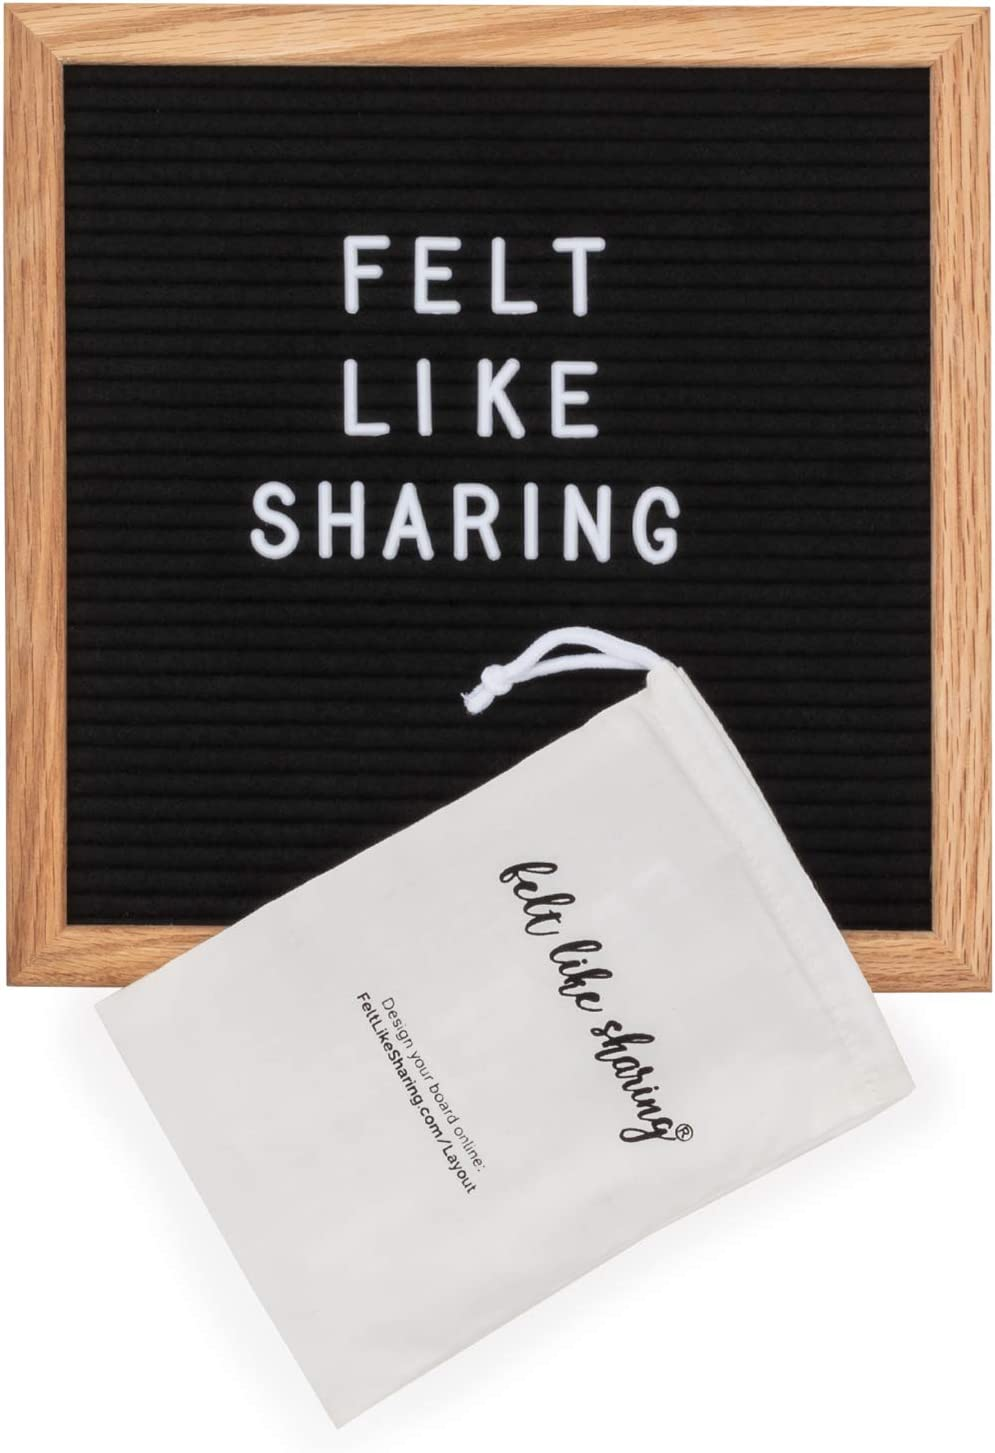 1 Inch Letters 300 Letters and Symbols ONLY Letter Board Changeable Letters Compatible with Most Felt Letter Boards.